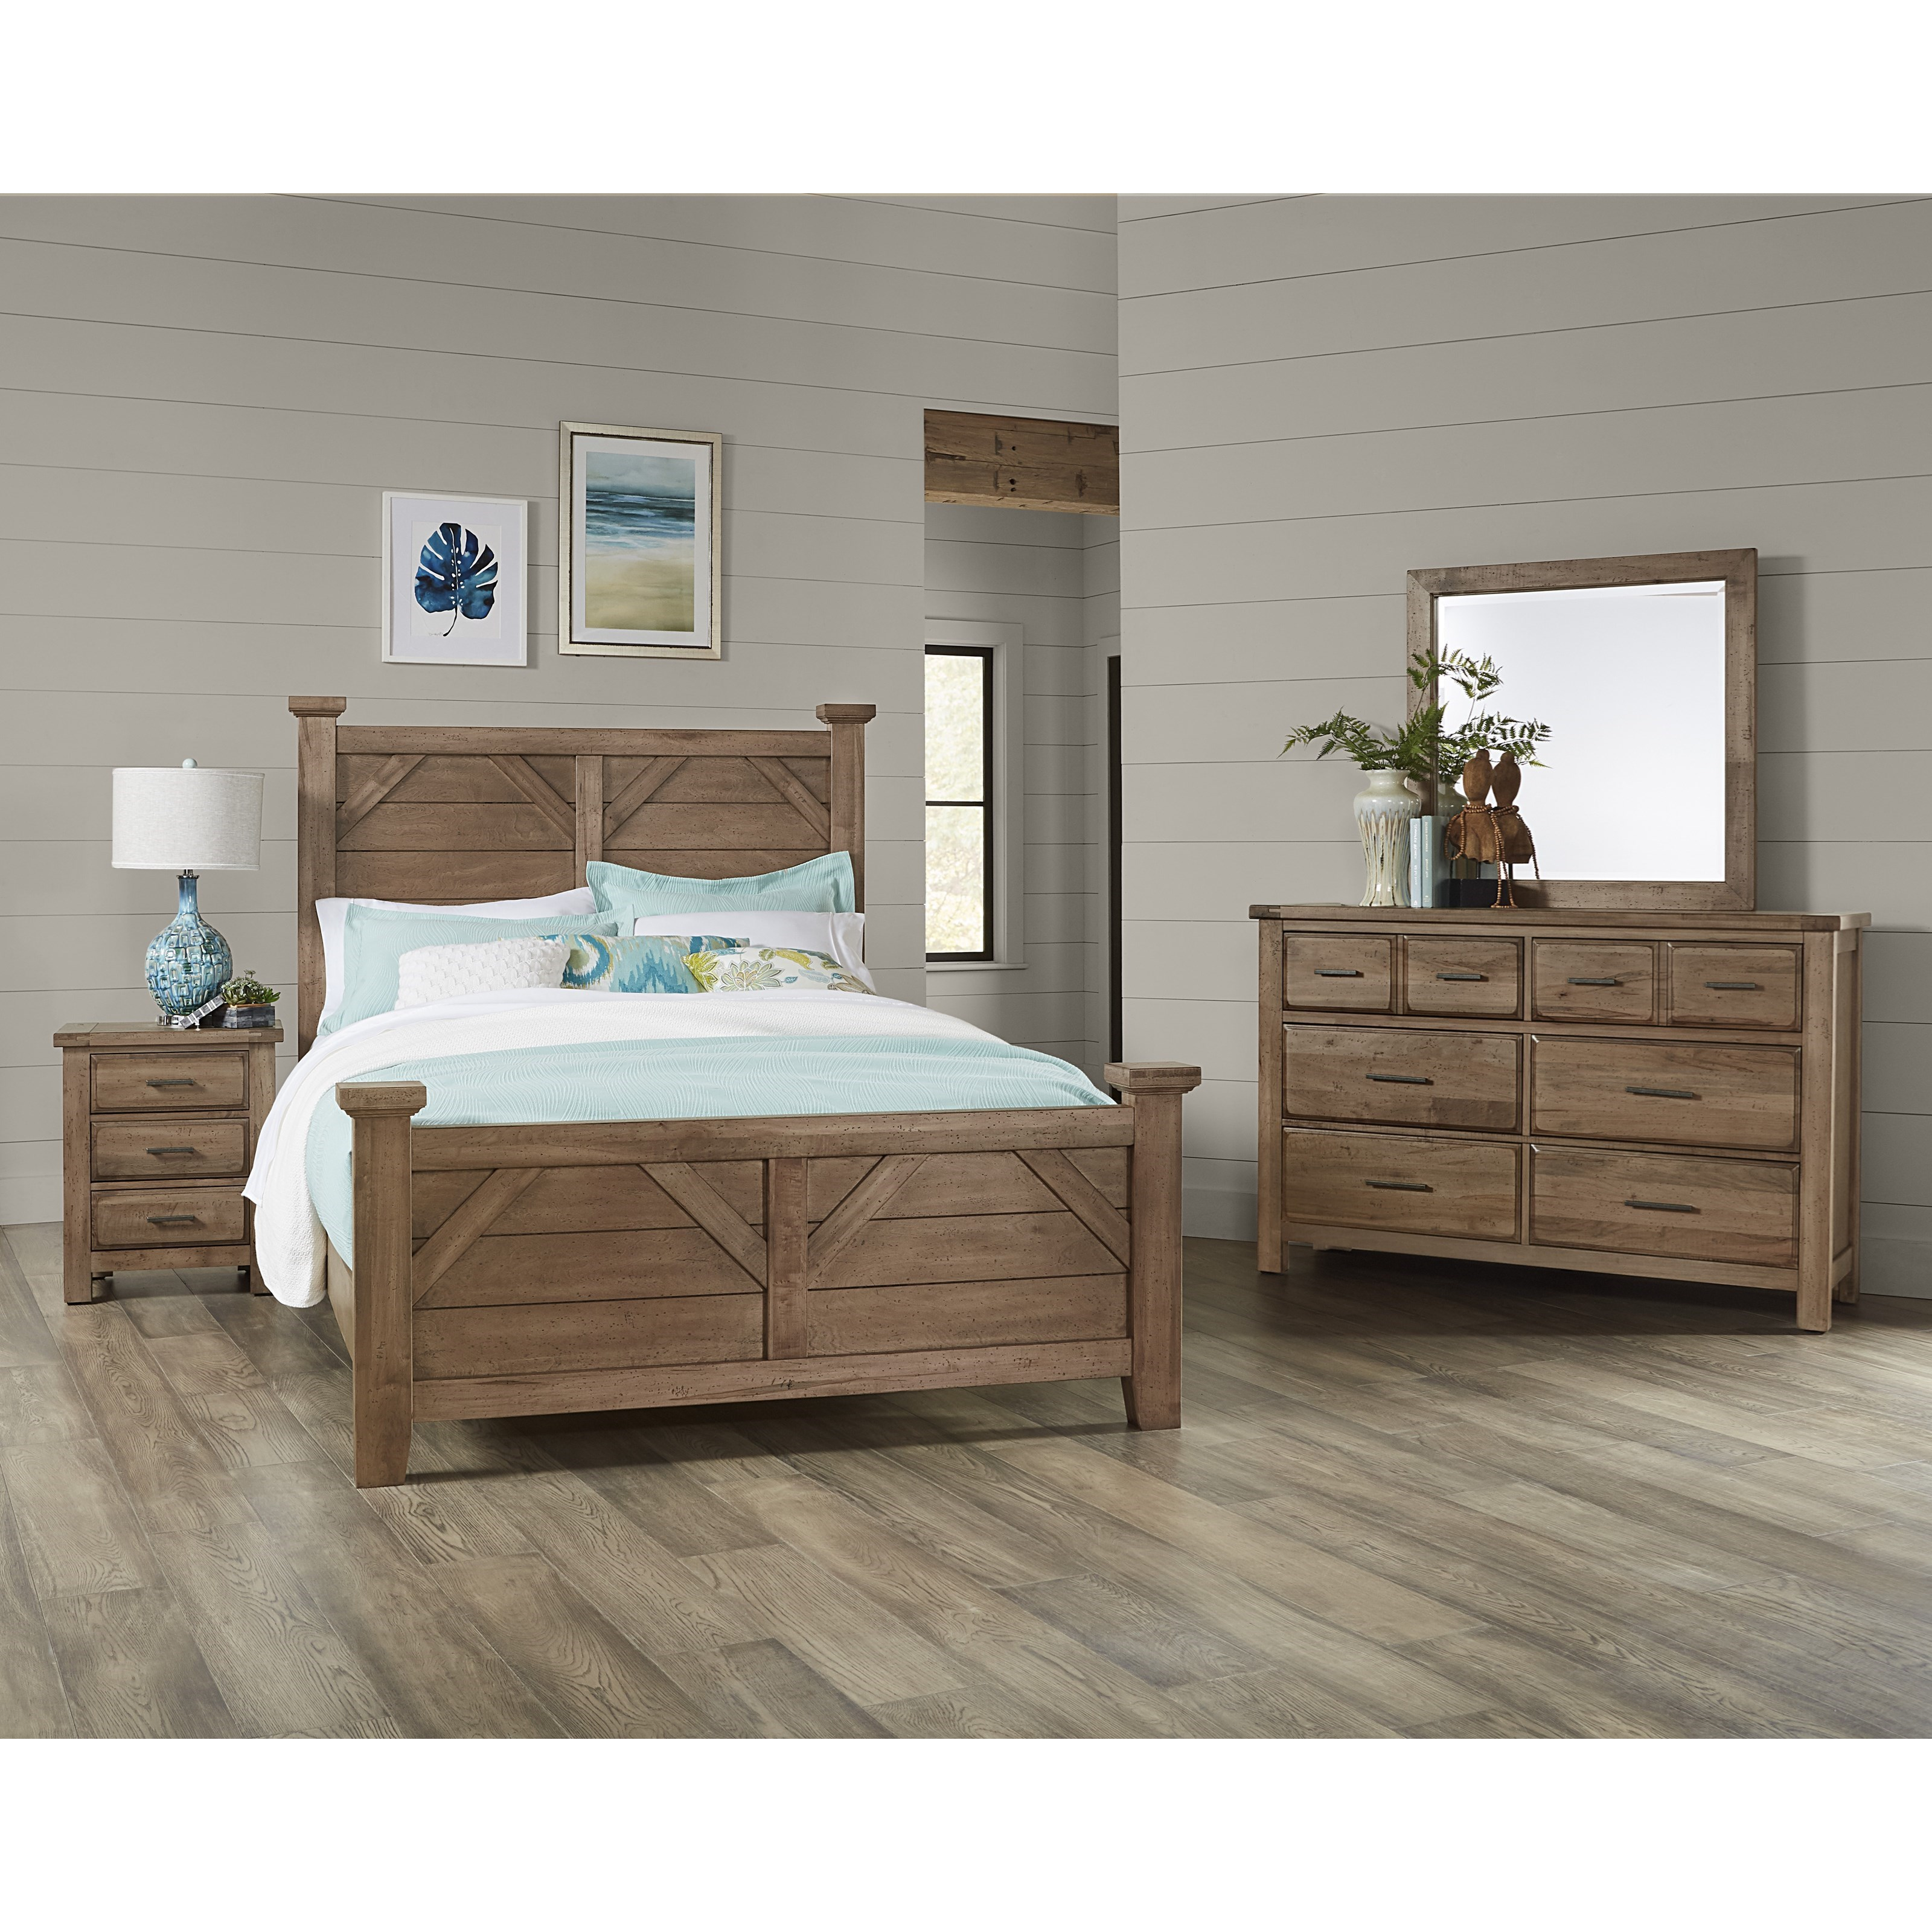 Simone Queen Bedroom Group by Vaughan-Bassett at Crowley Furniture & Mattress